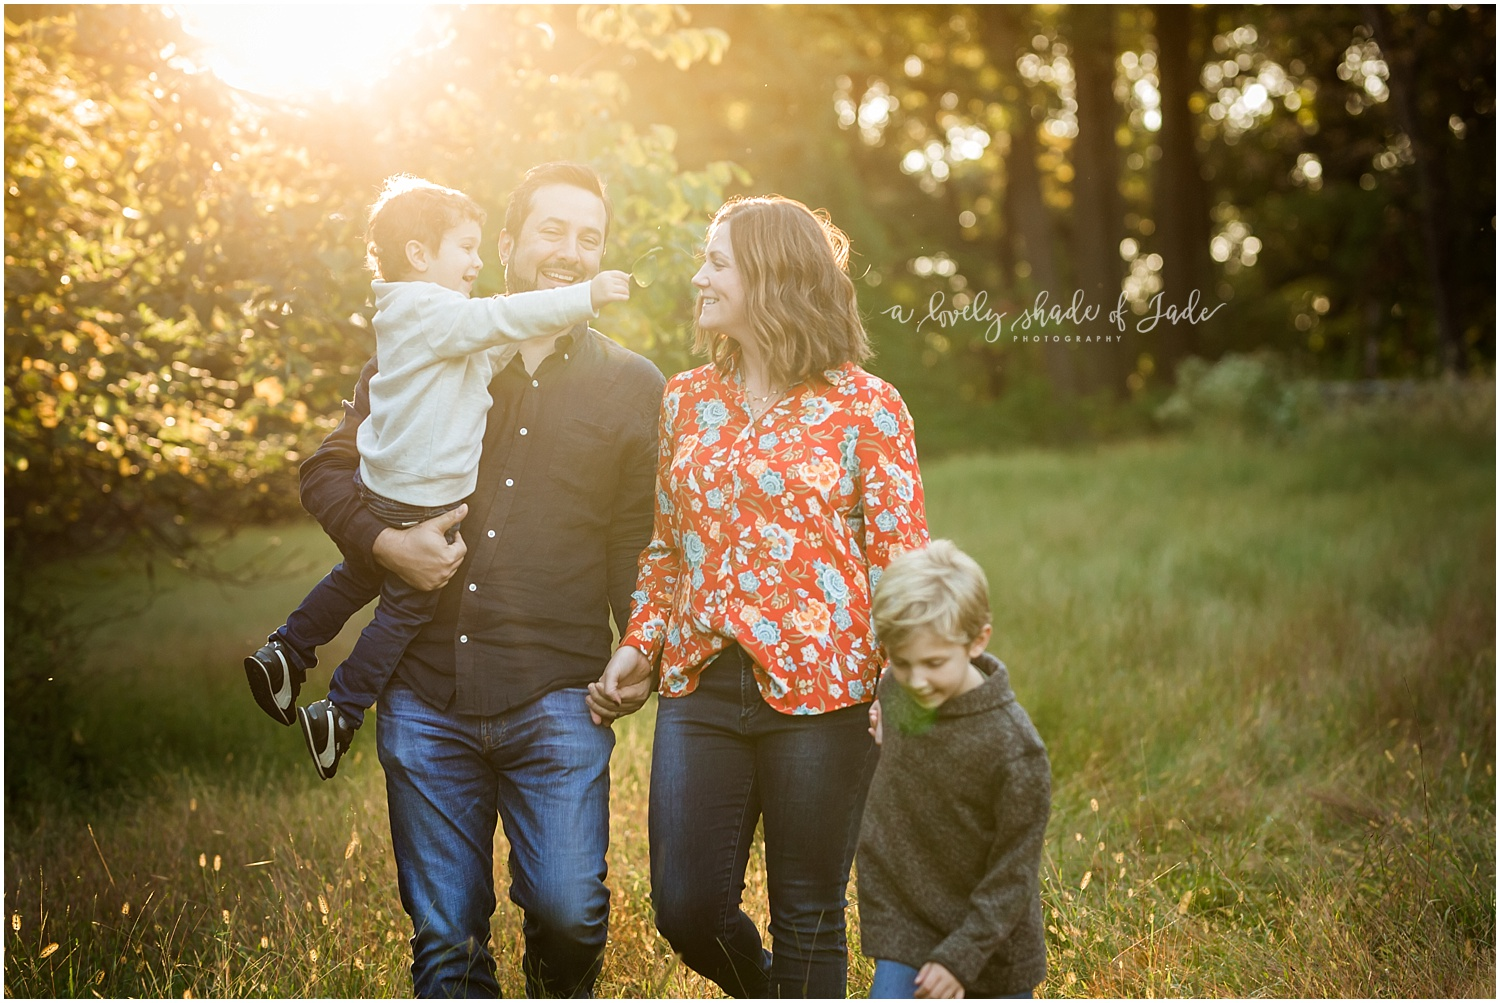 Harmon_Family_Morristown_NJ_Photographer_0010.jpg